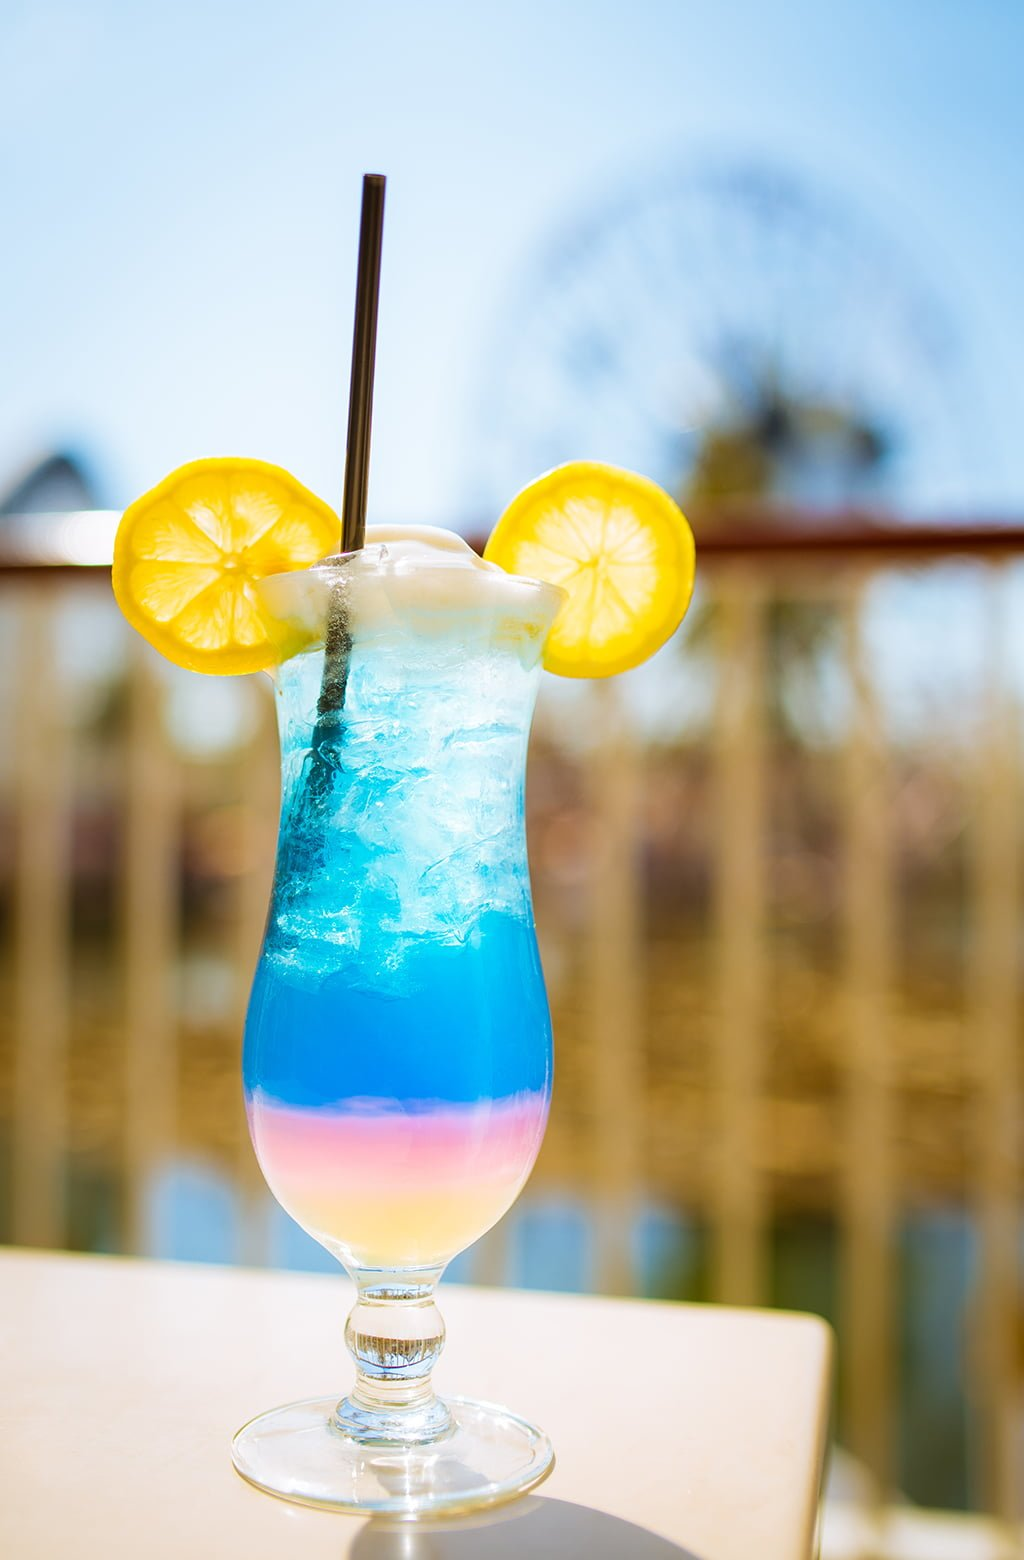 Disneyland Bar Crawl Guide - Disney Tourist Blog